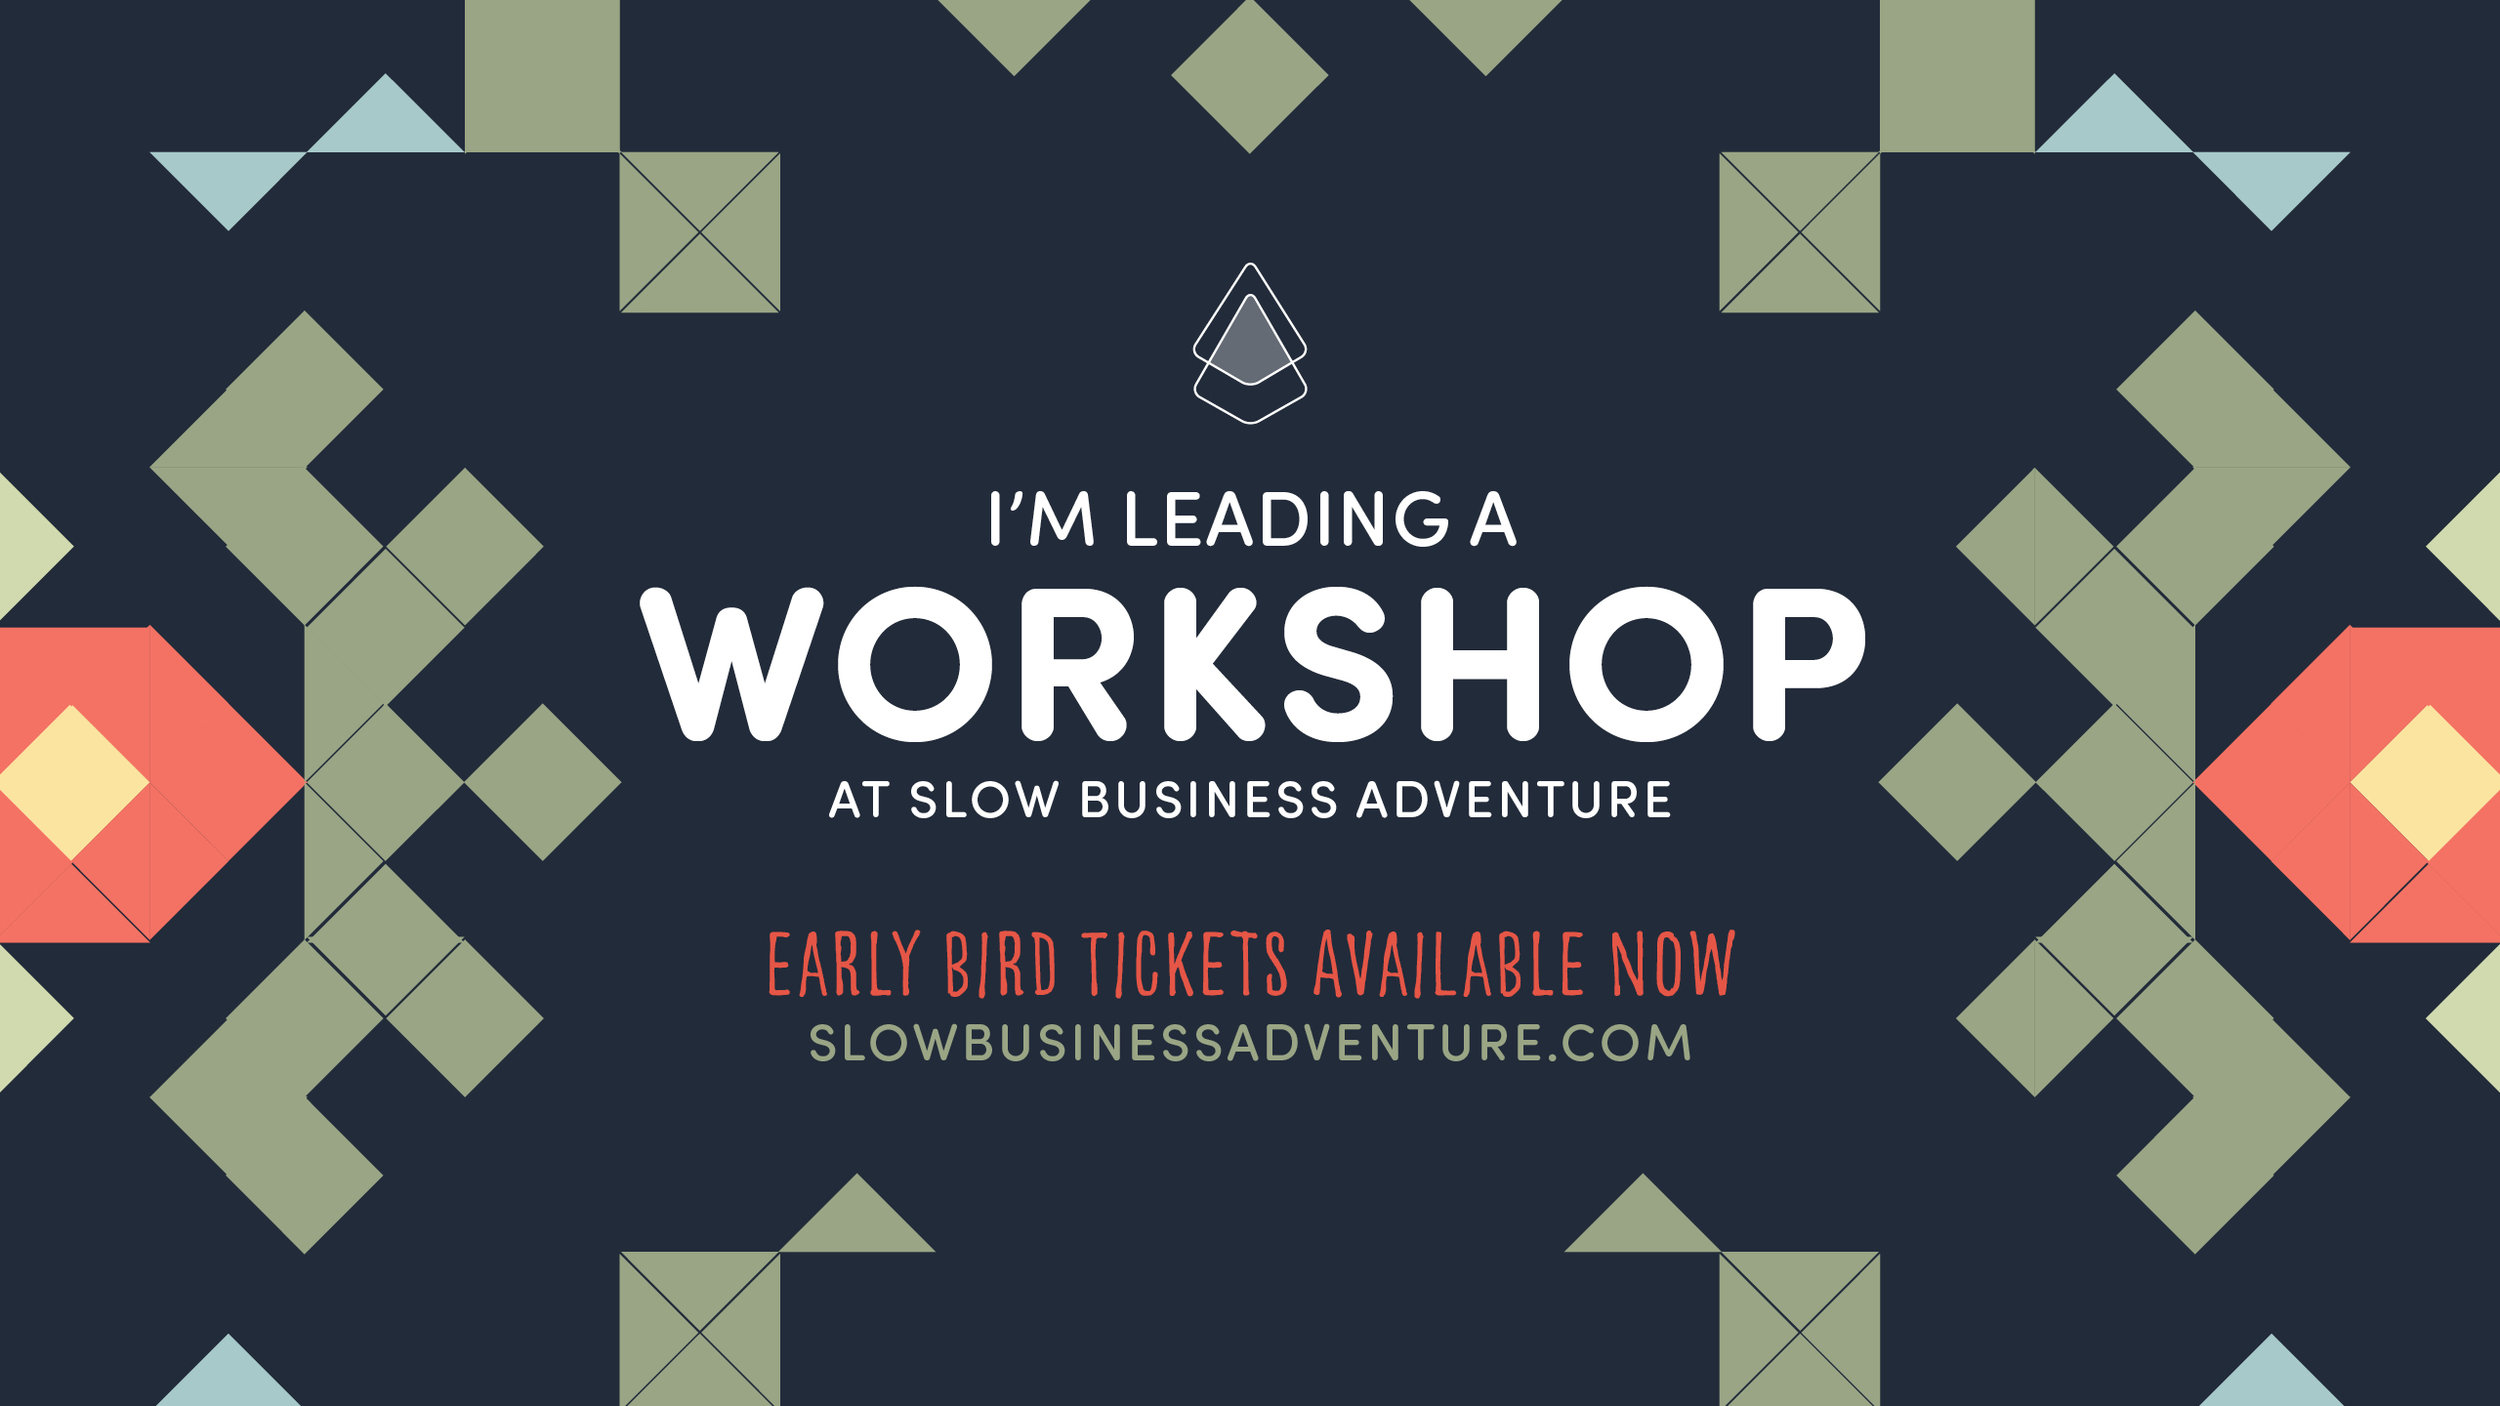 Workshop: Learn how to user test on a budget - Join me at what might be the world's most beautifull business event ever - The Slow Business Adeventure in september. Entrepreneurs from all over Europe are coming. See you there?